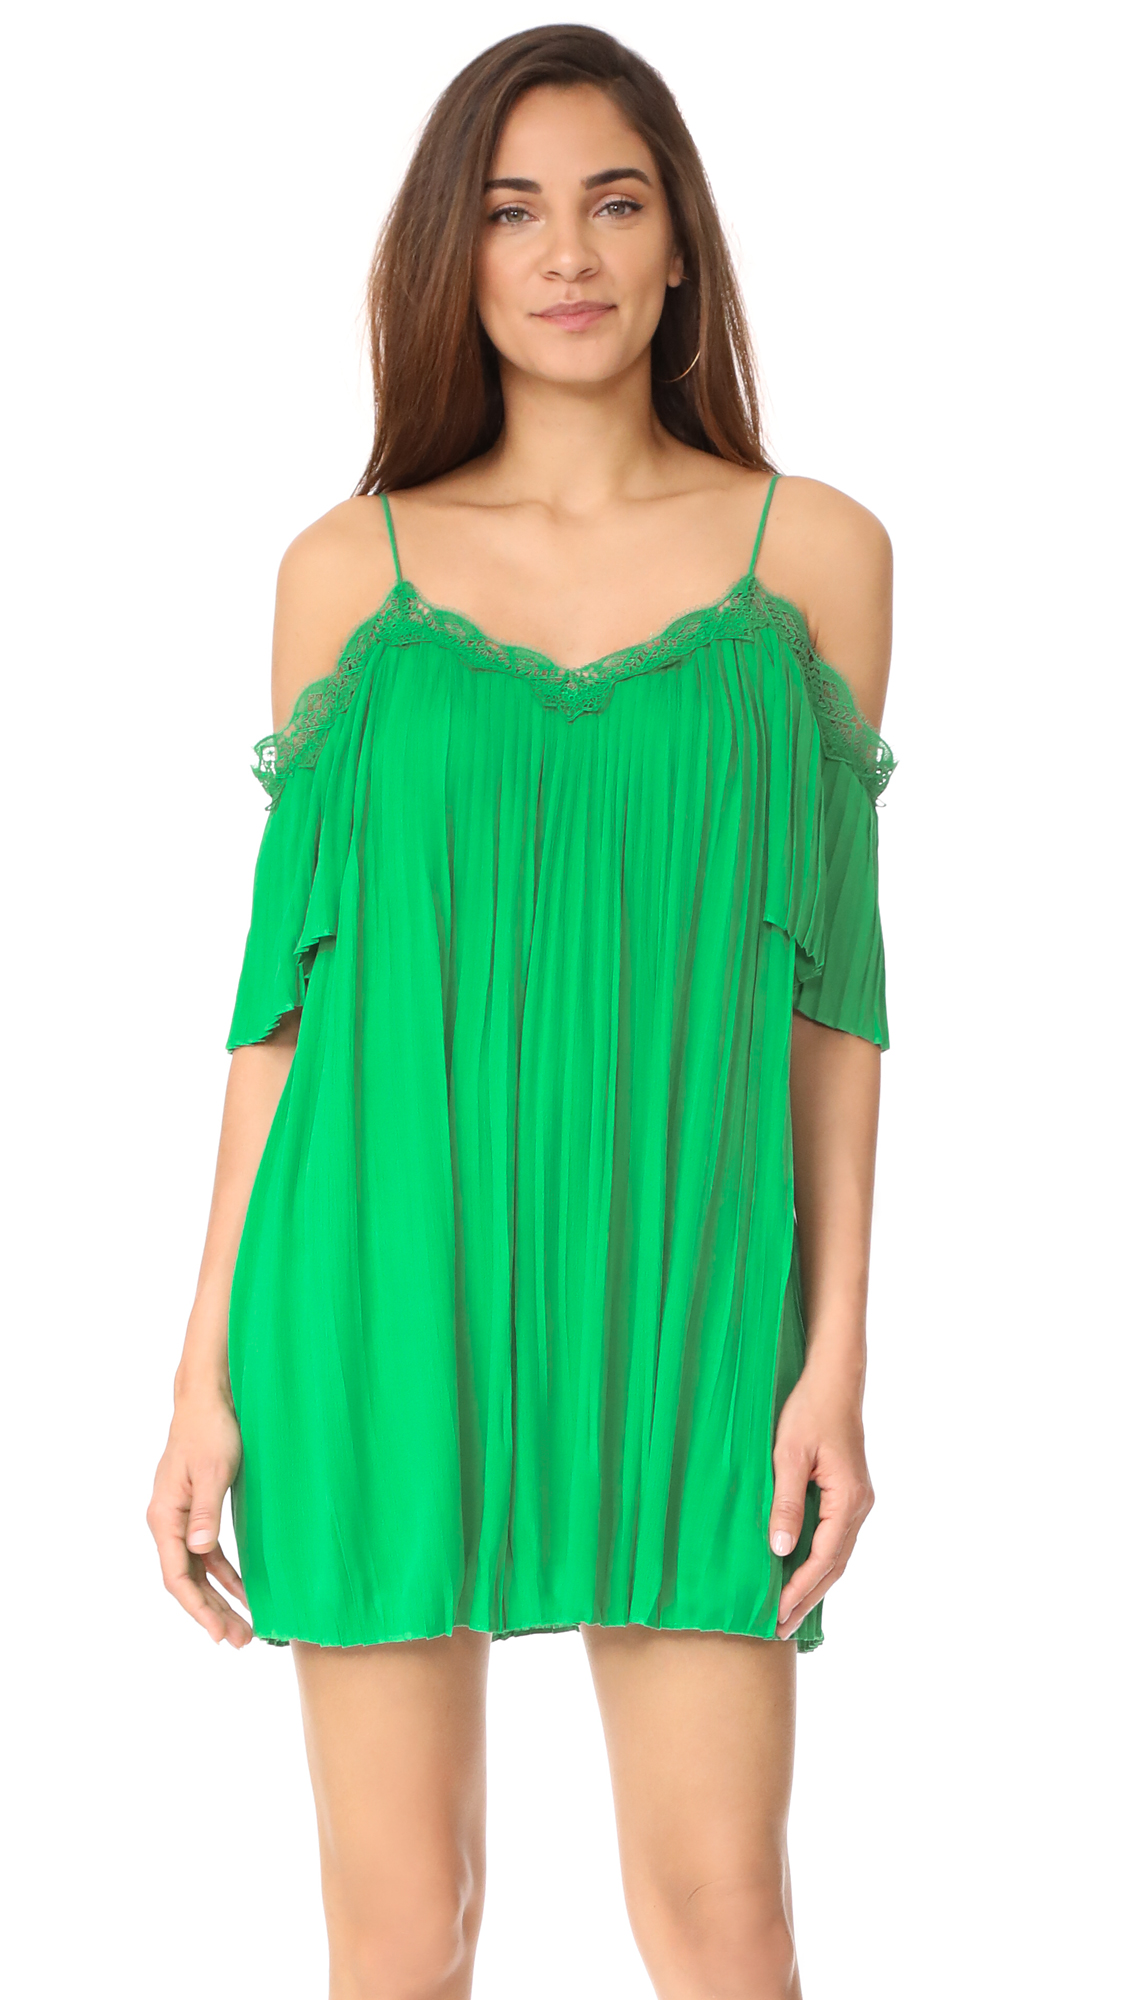 alice + olivia Mimi Cold Shoulder Pleated Dress - Kelly Green